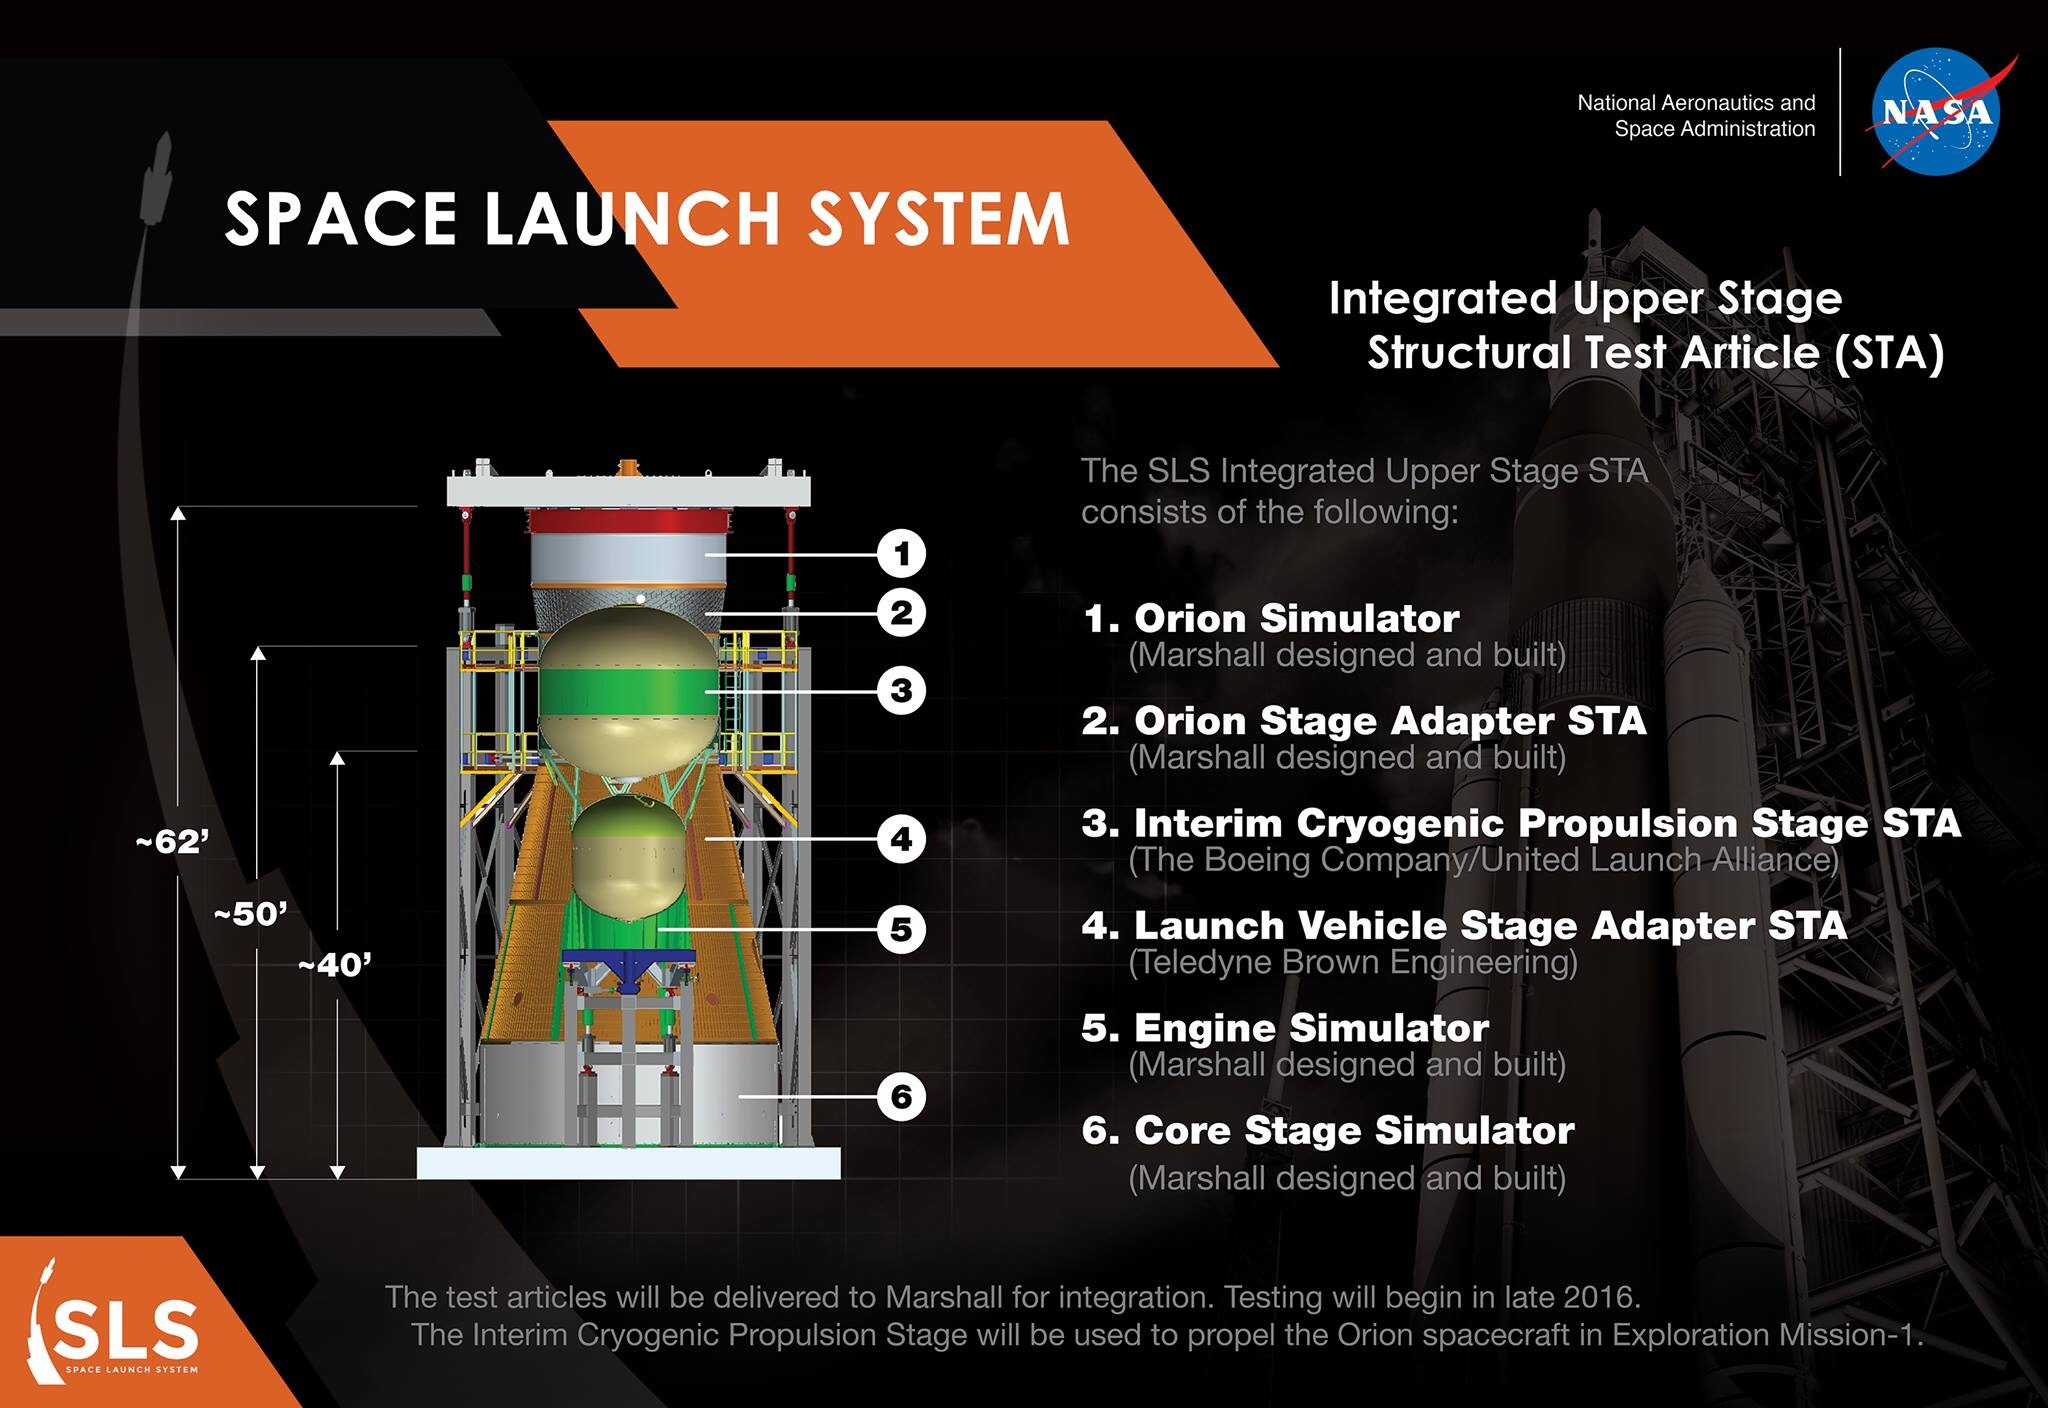 SLS: Integrated Upper Stage Structural Test Article Graphic. Photo Credit: NASA